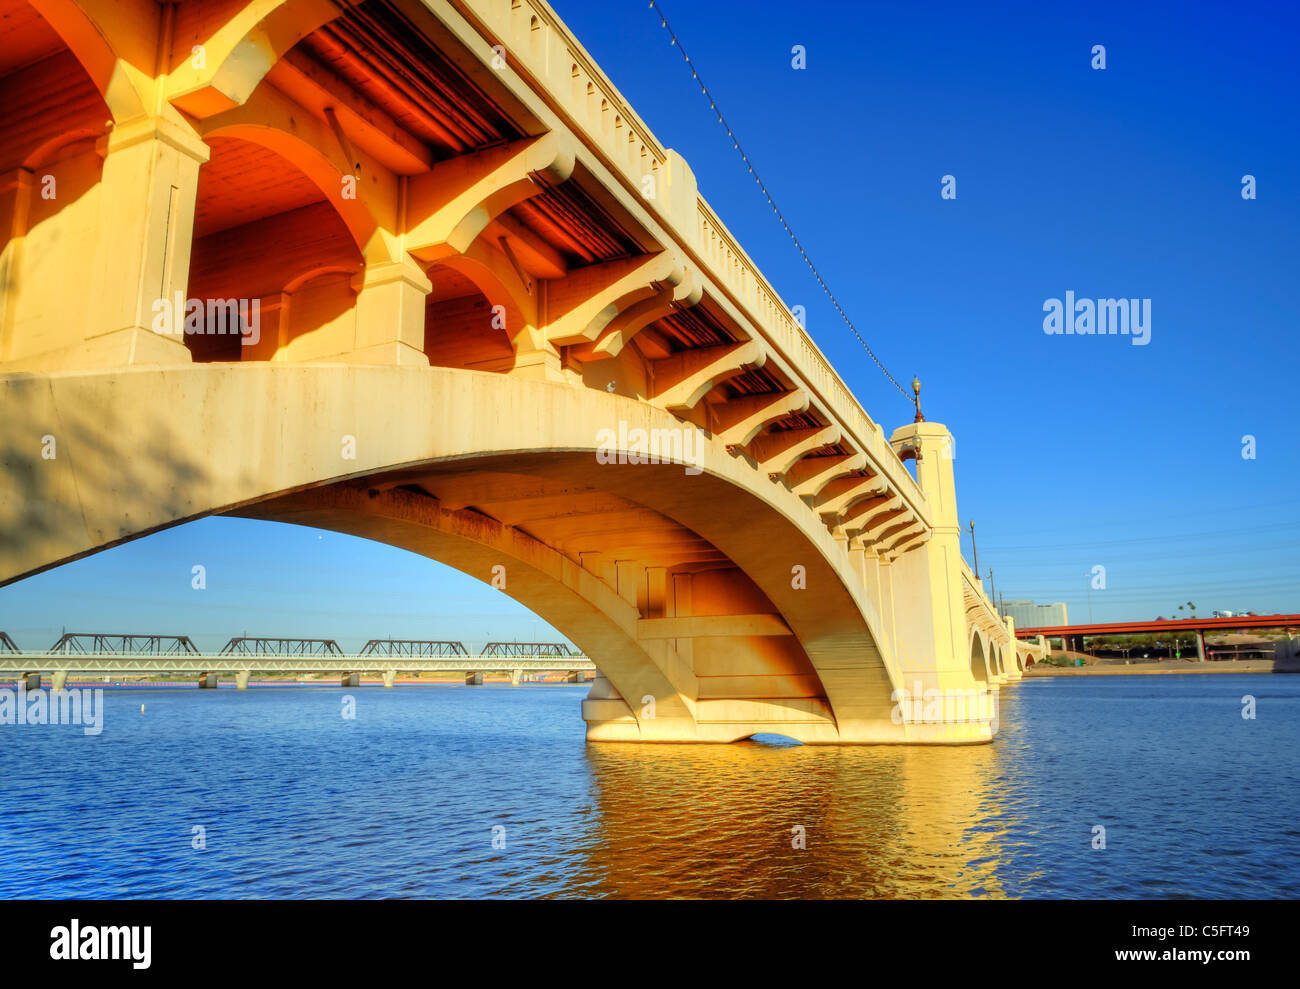 The Mill Avenue Bridges consist of two bridges that cross the Salt River in Tempe, AZ at the north end of the shopping - Stock Image